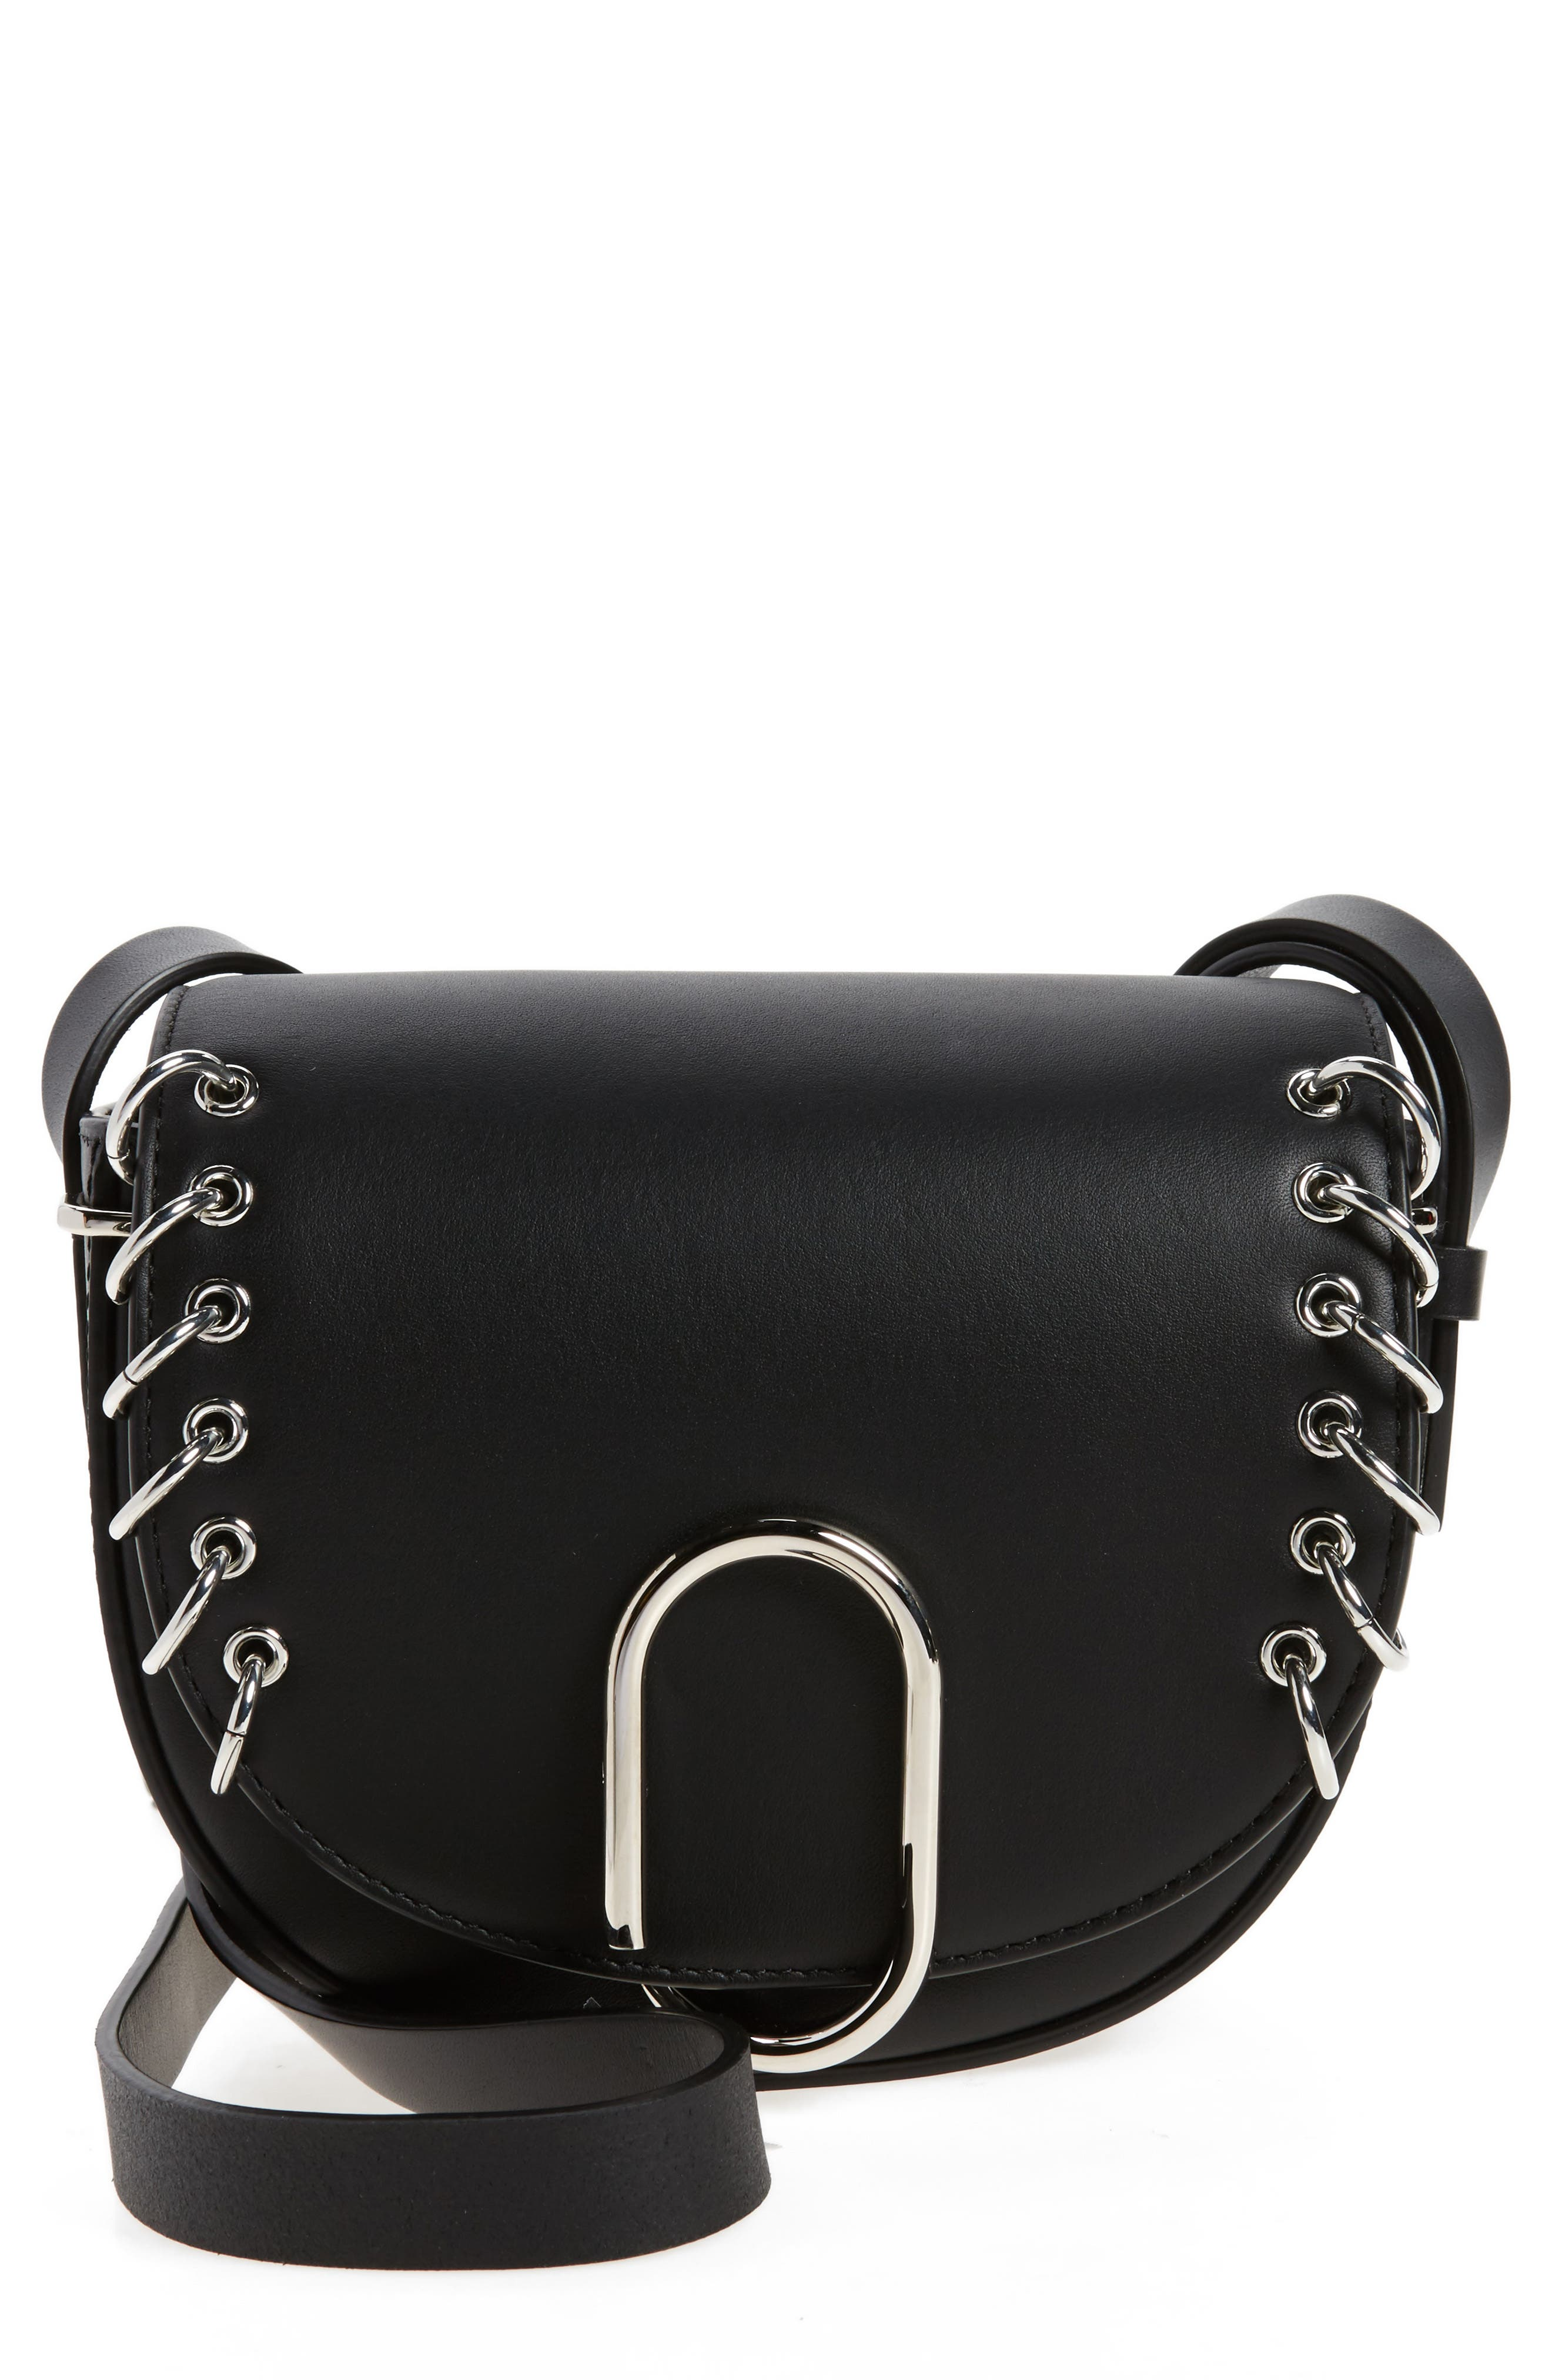 3.1 Phillip Lim Mini Alix Leather Crossbody Bag